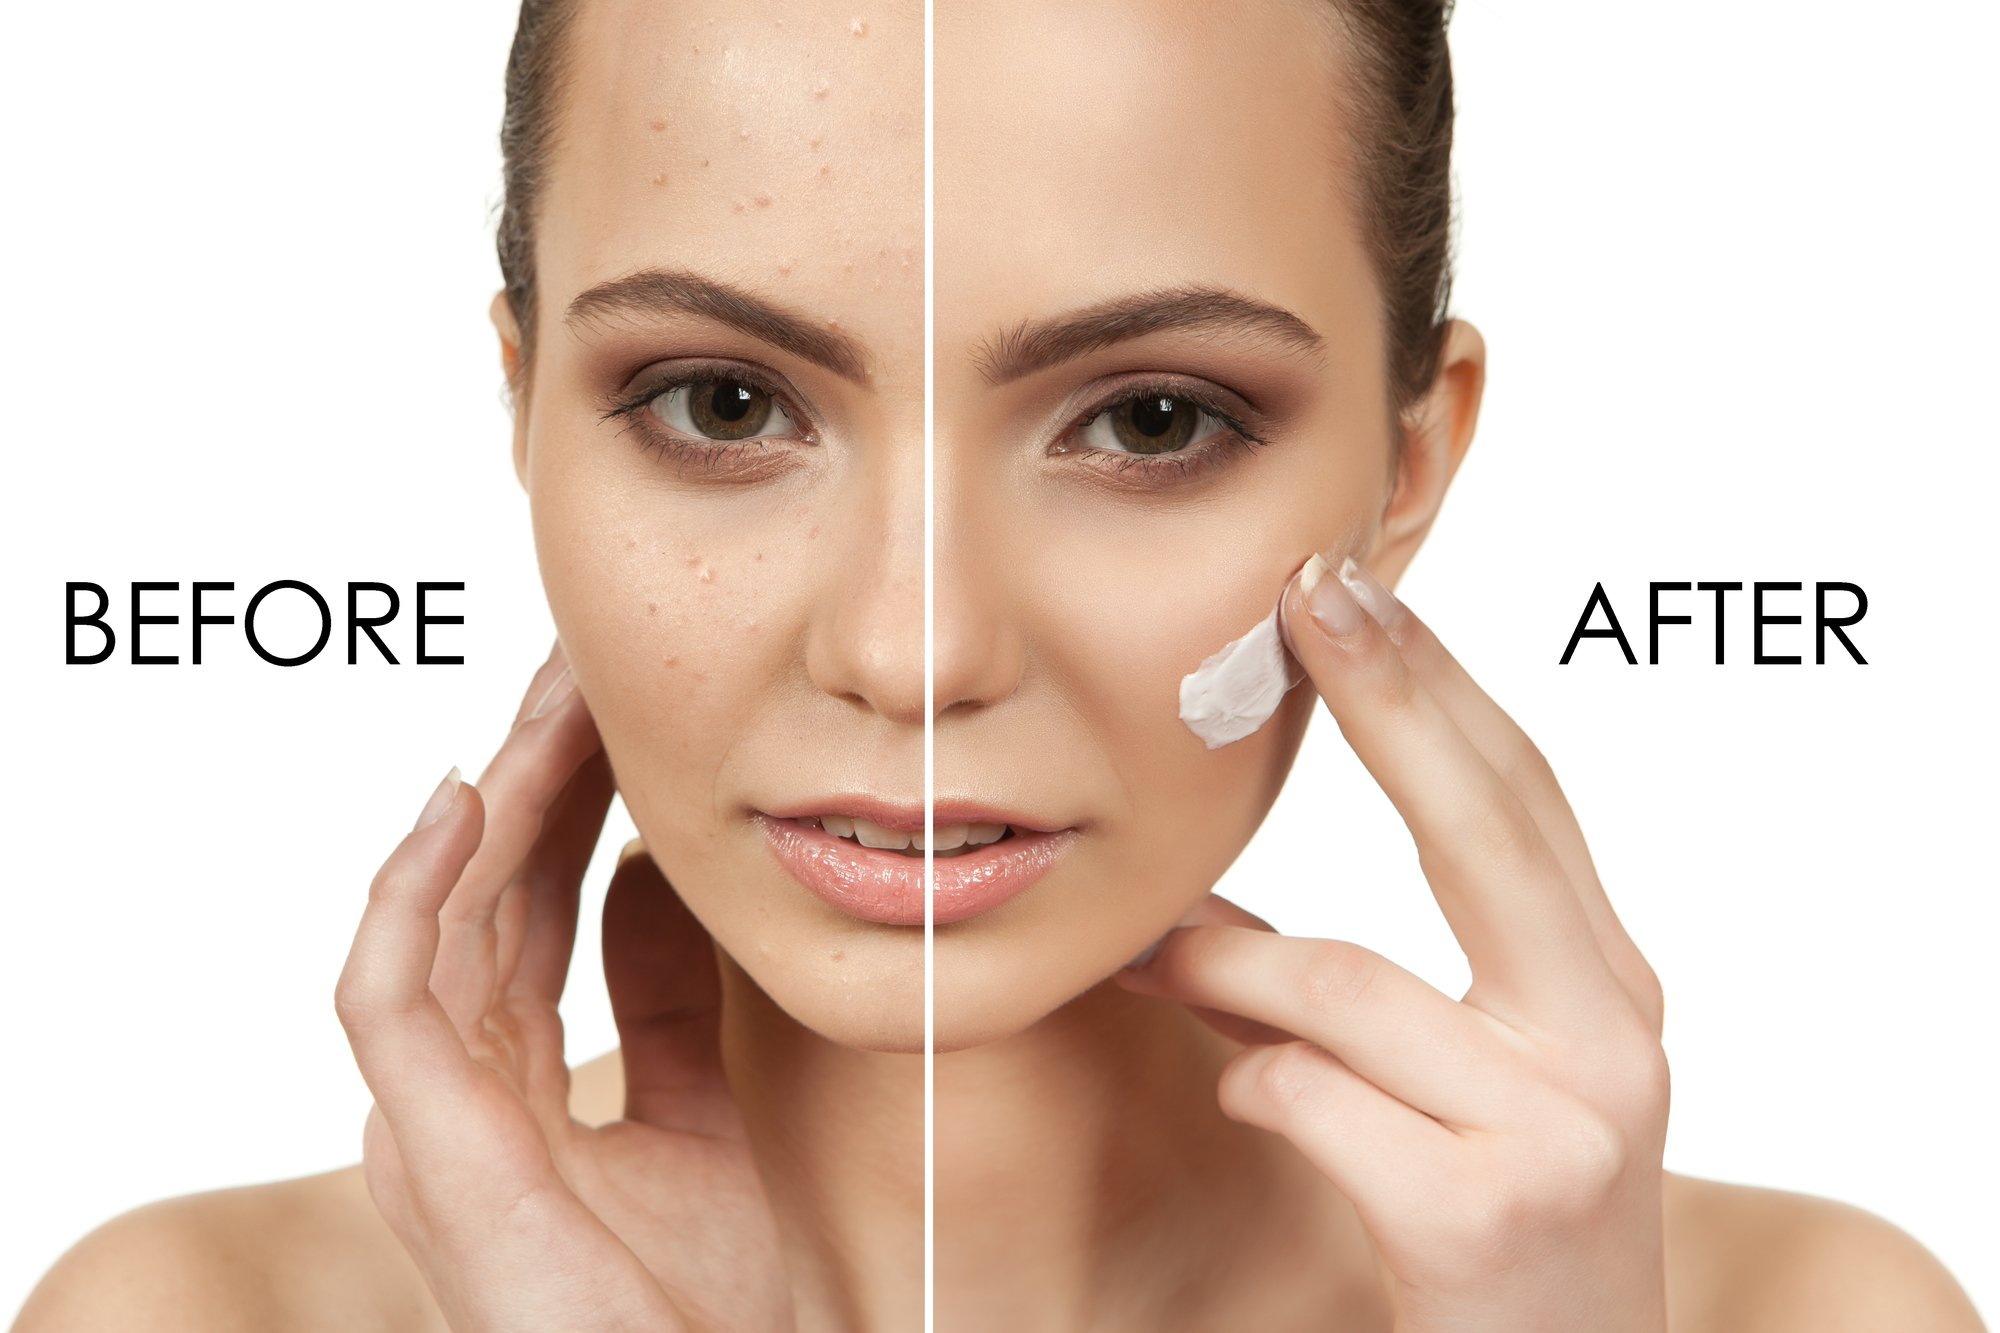 The beautiful girl with a make-up in Spa salon after cosmetic procedures holding a tool for makeup